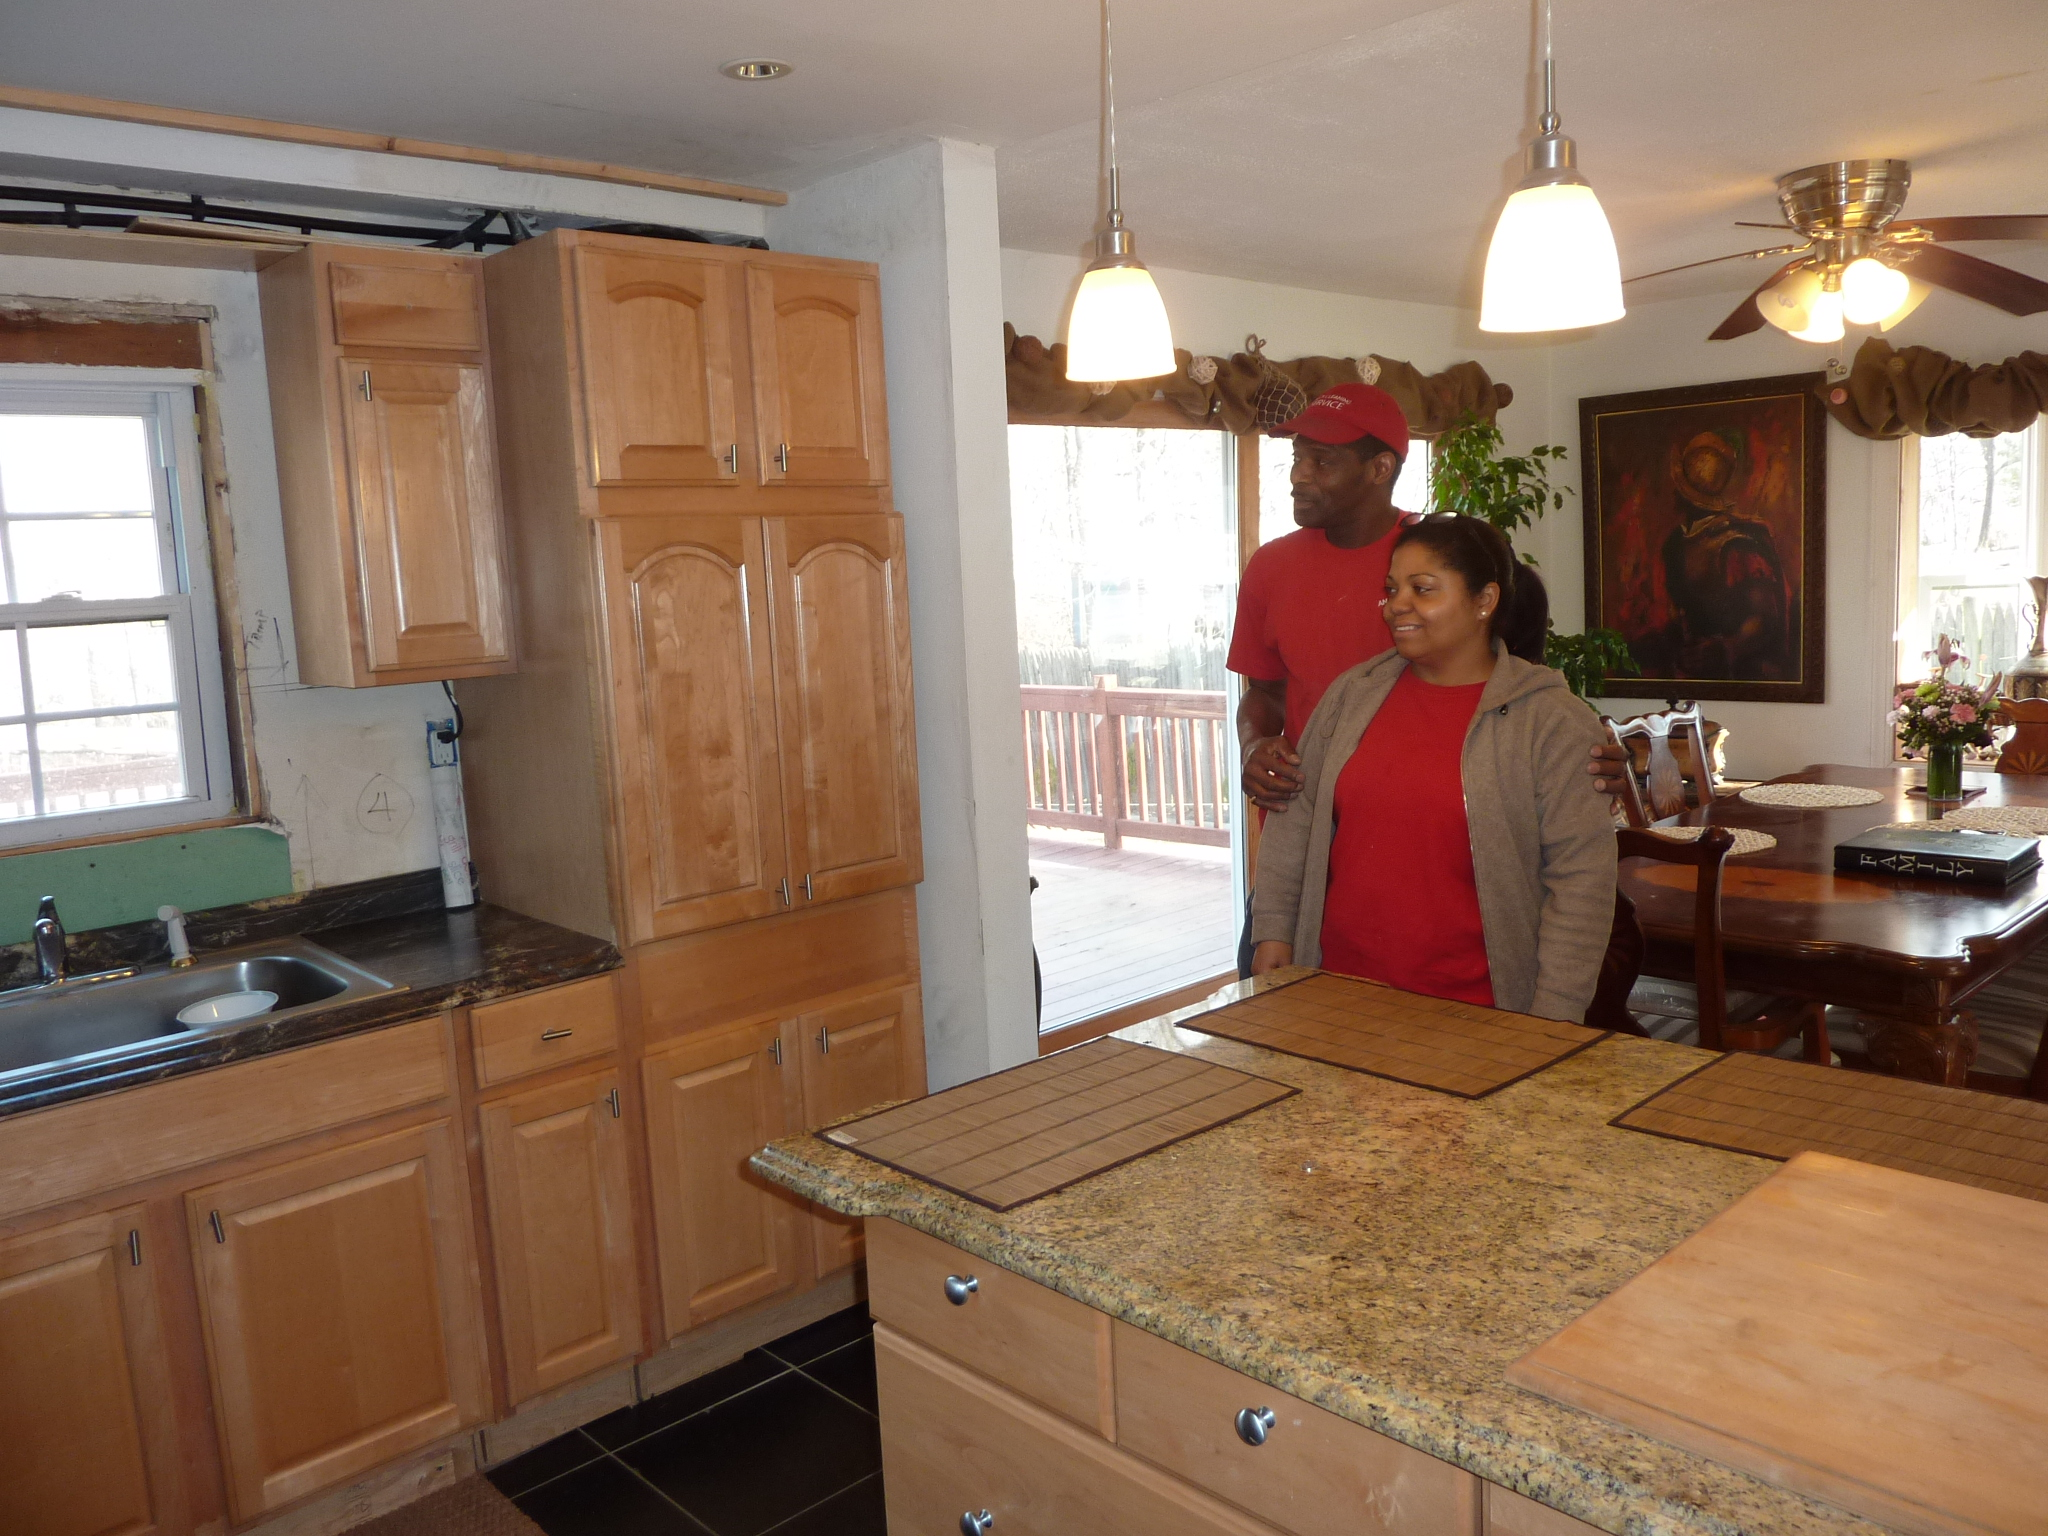 The new layout of the kitchen gives Earl and Ana's home a more open feeling.